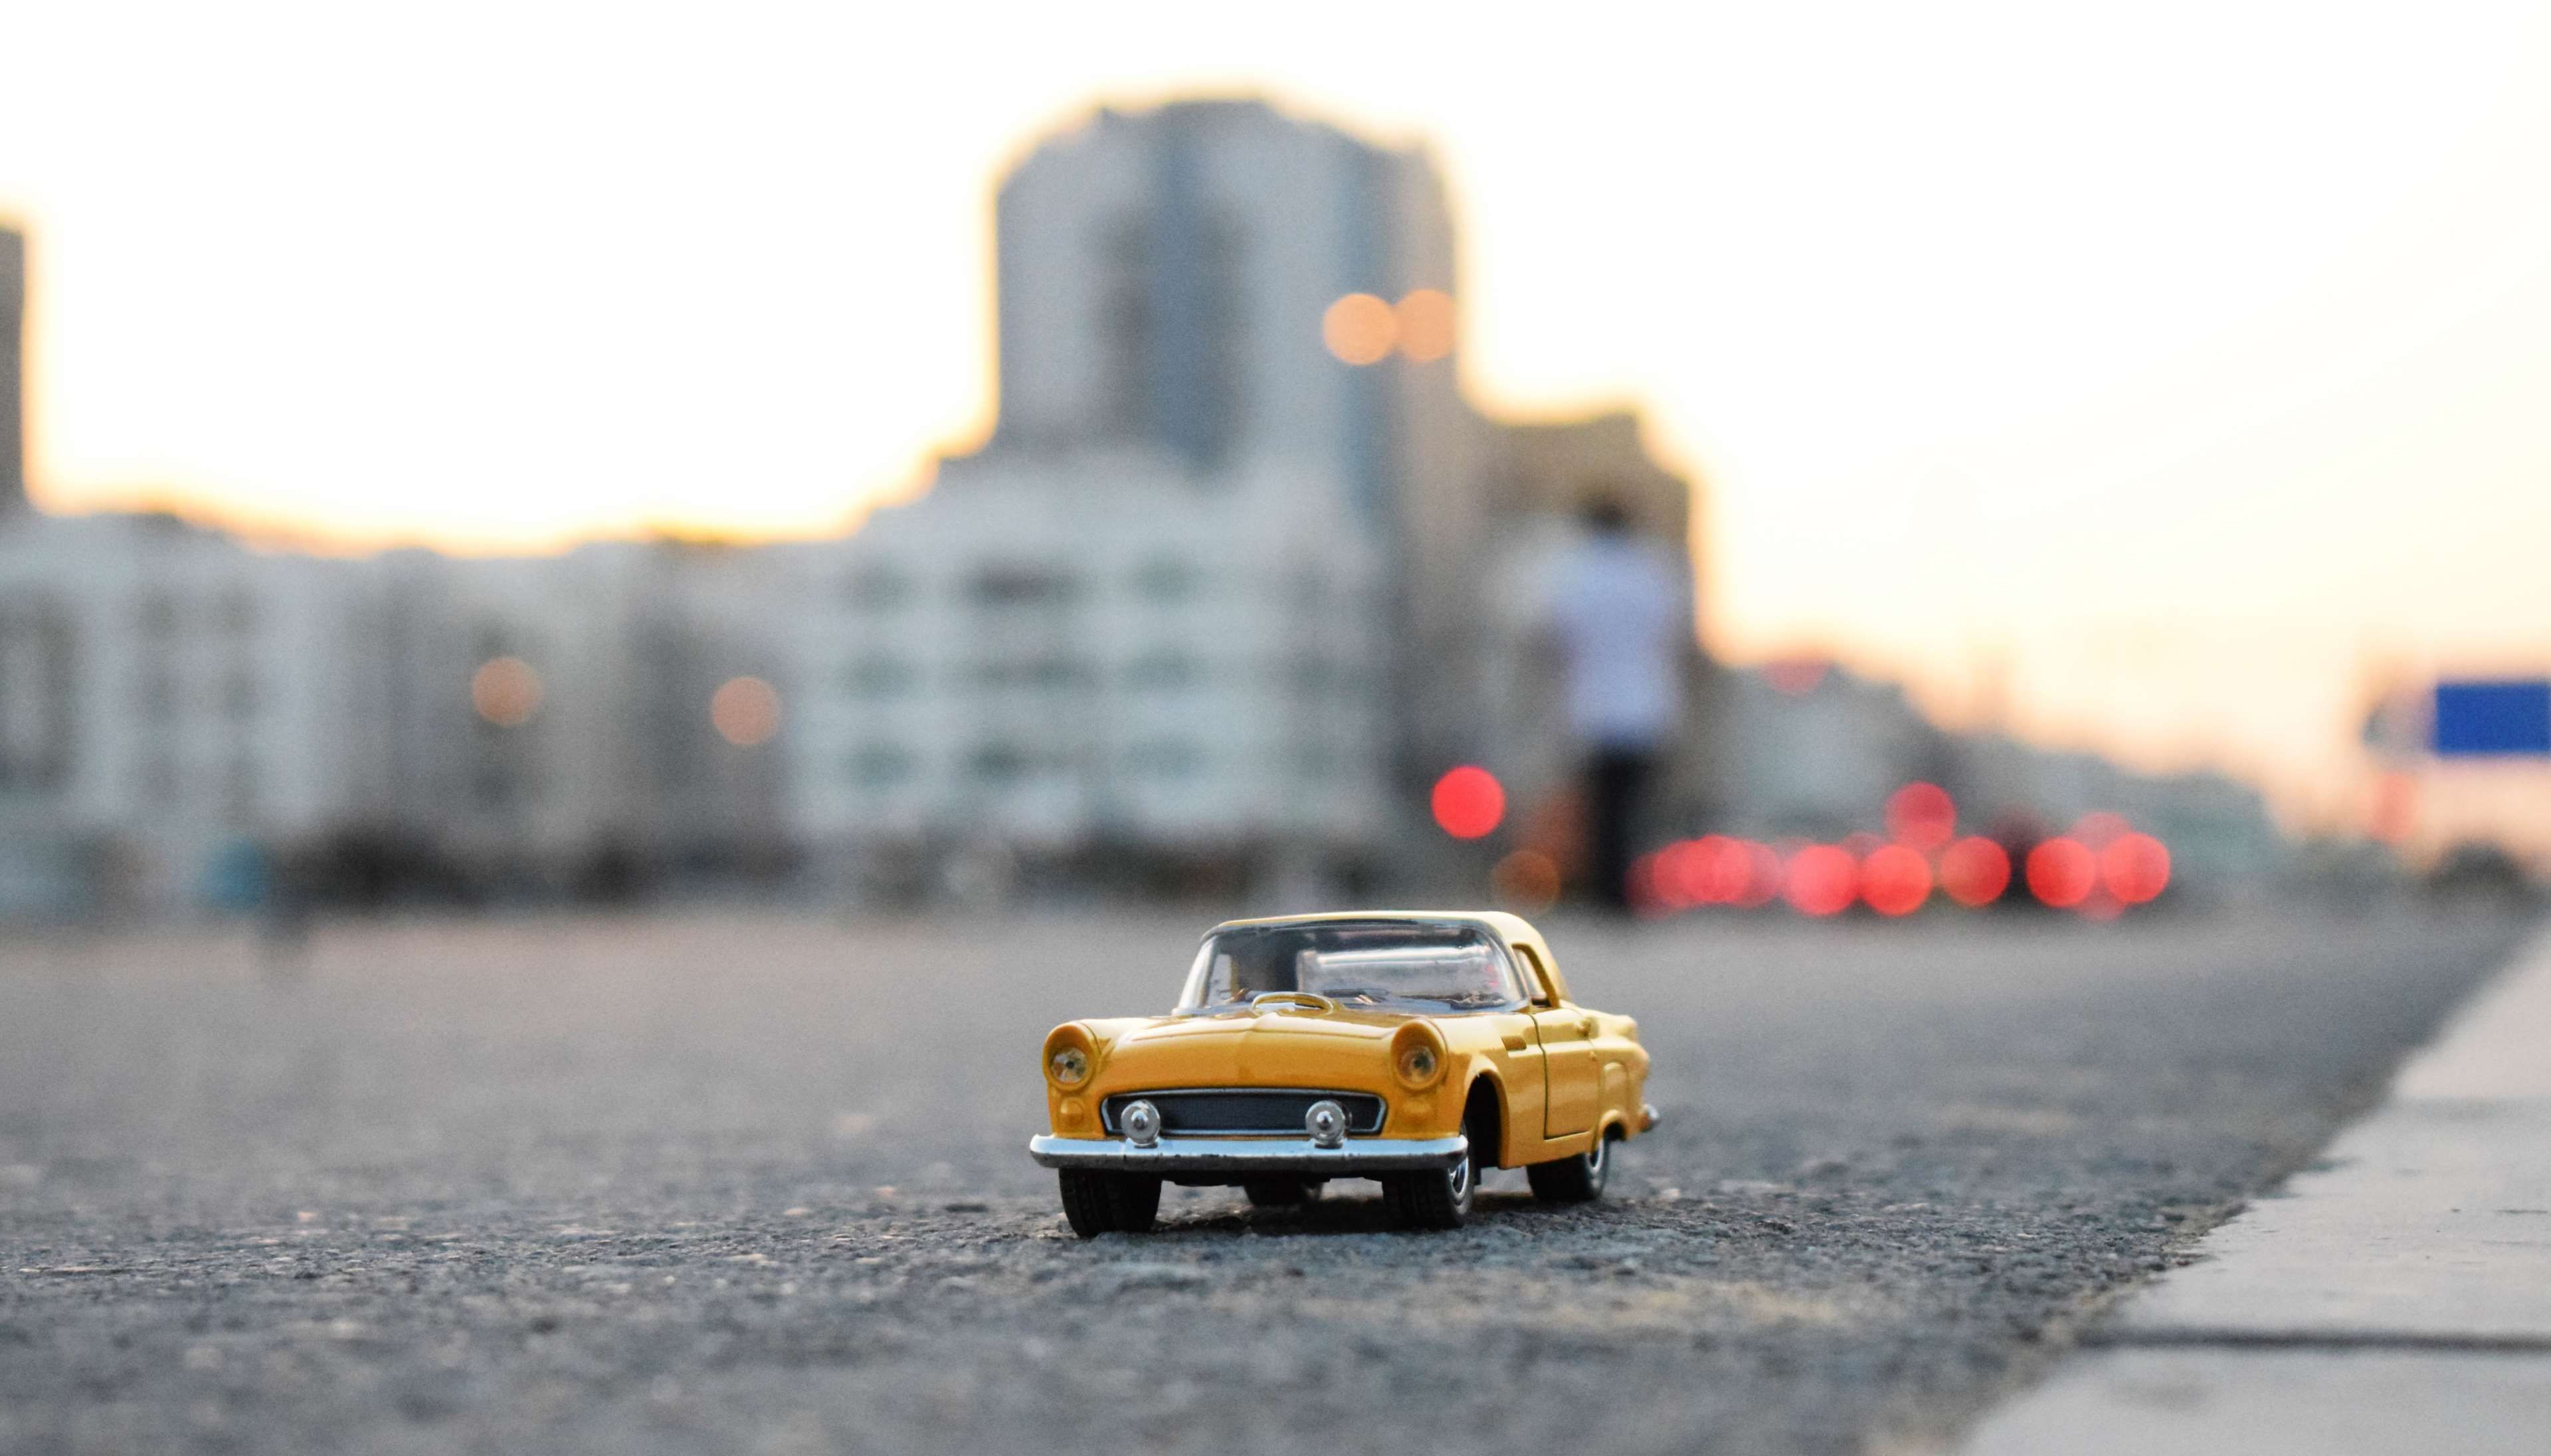 Arunsphotography Bokeh Diecast Cars Diecast Photography Toy